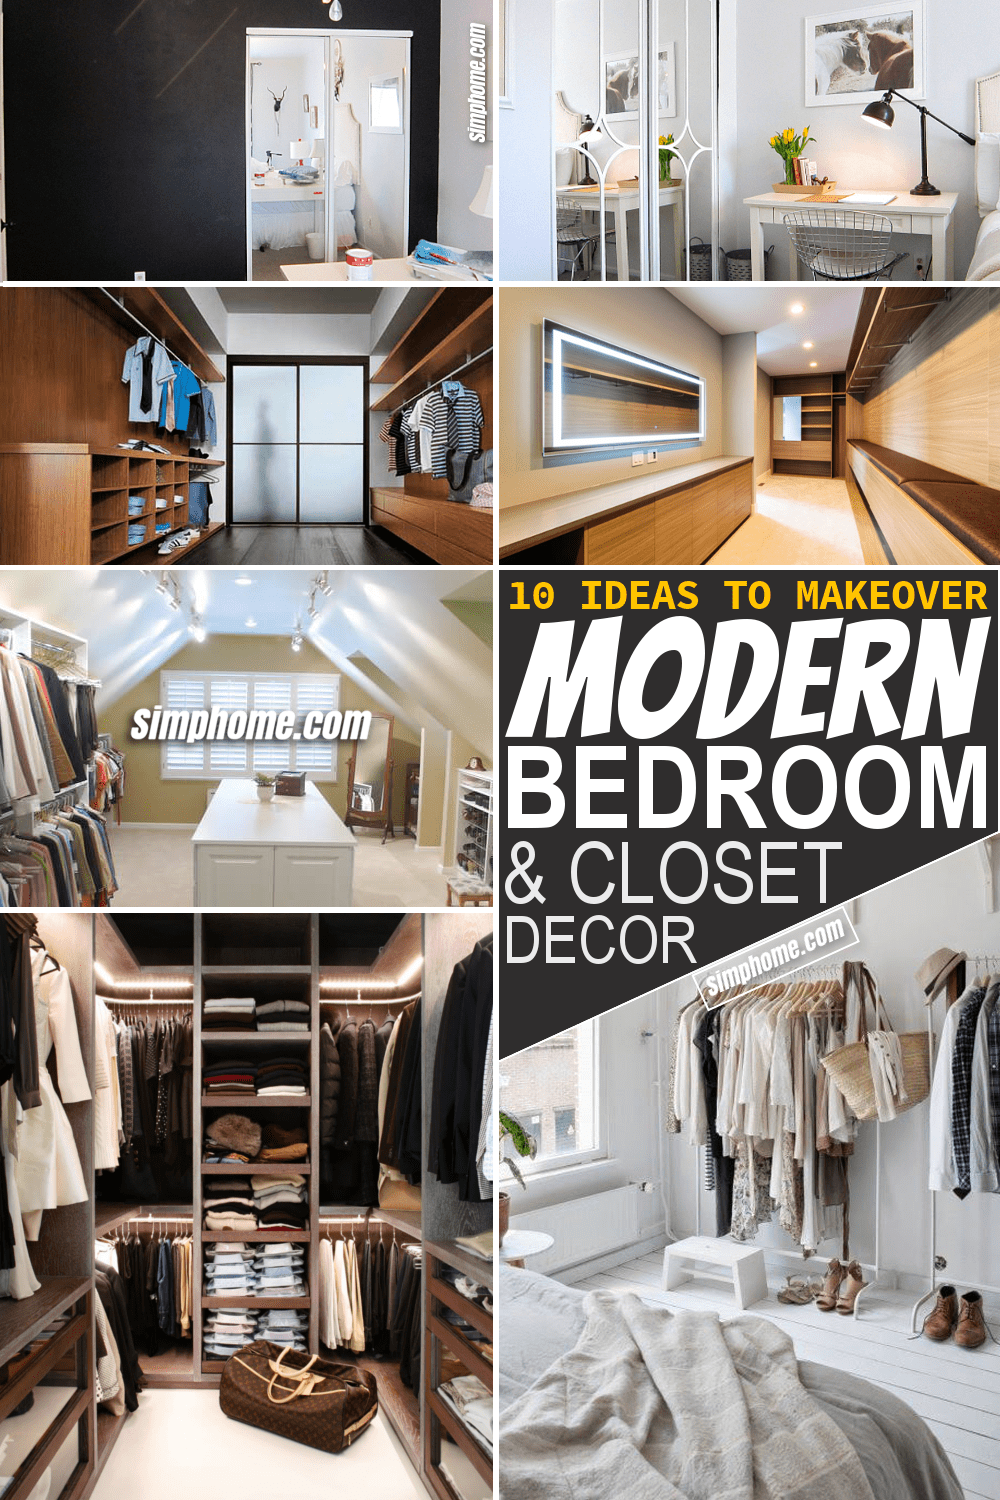 Simphome.com 10 makeover modern bedroom closet ideas Featured Pinterest